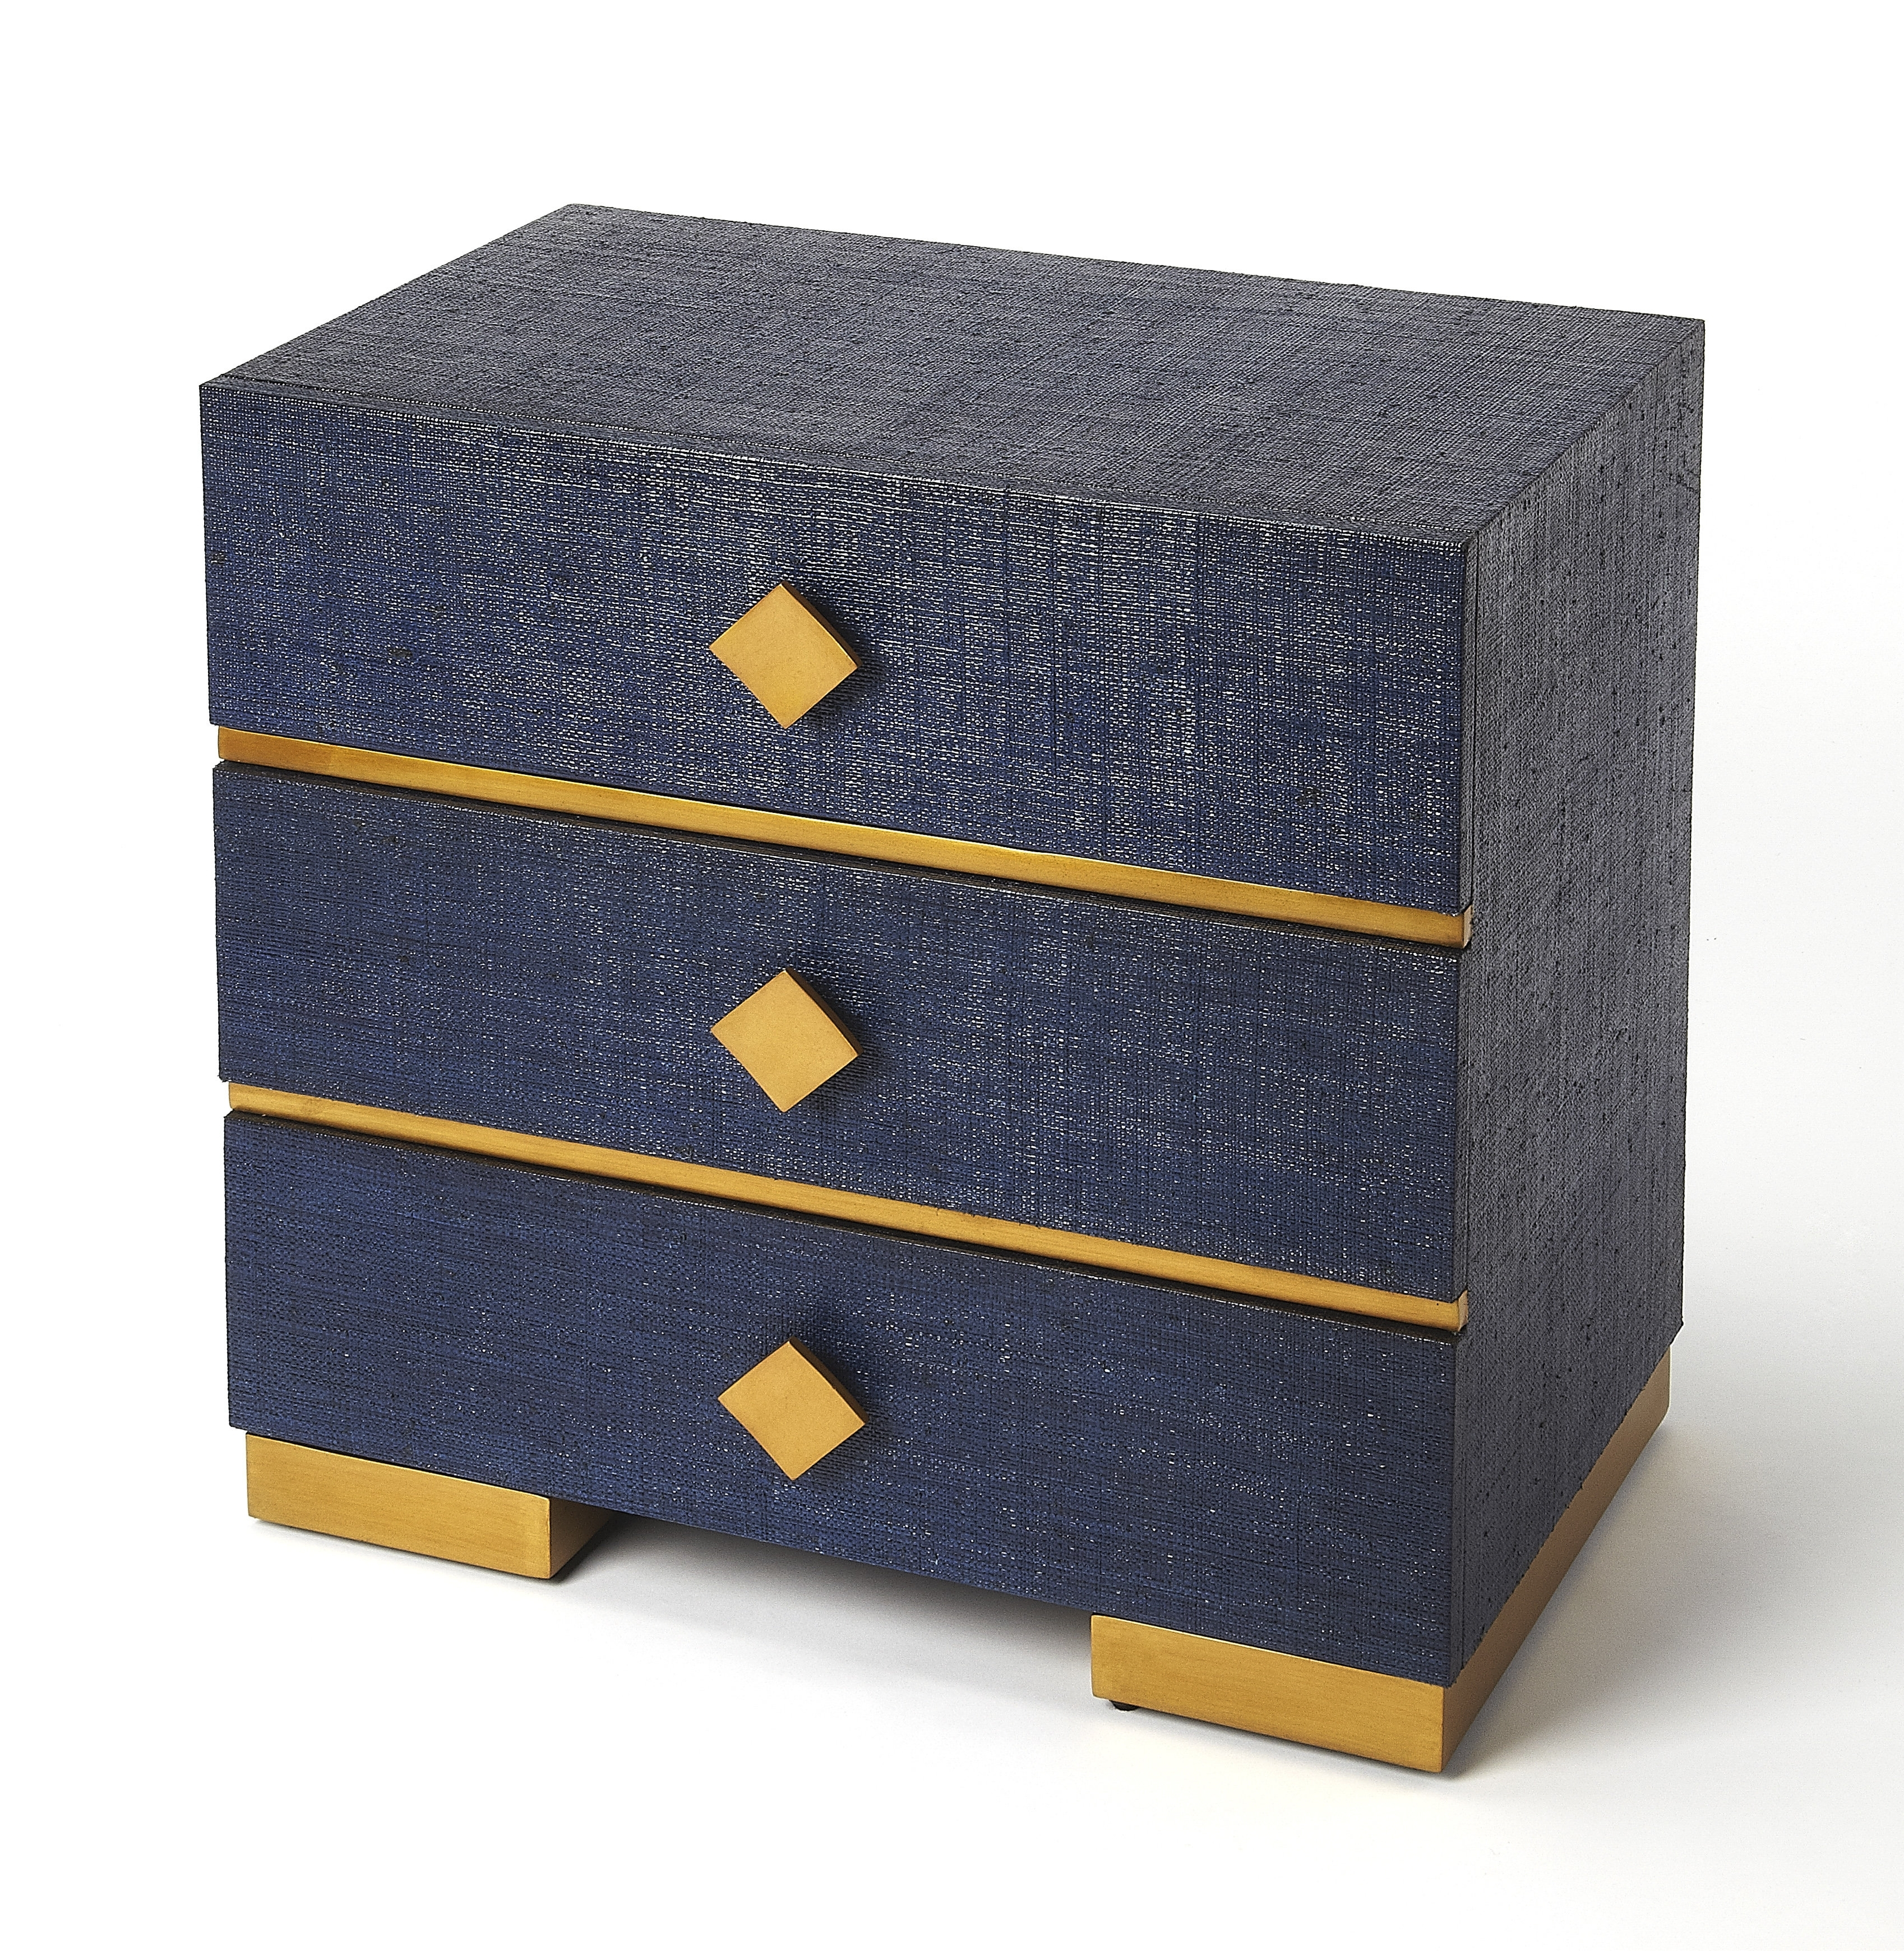 Mercer41 Concourse 3 Drawer Accent Chest | Wayfair in Moraga Live Edge 8 Door Sideboards (Image 23 of 30)